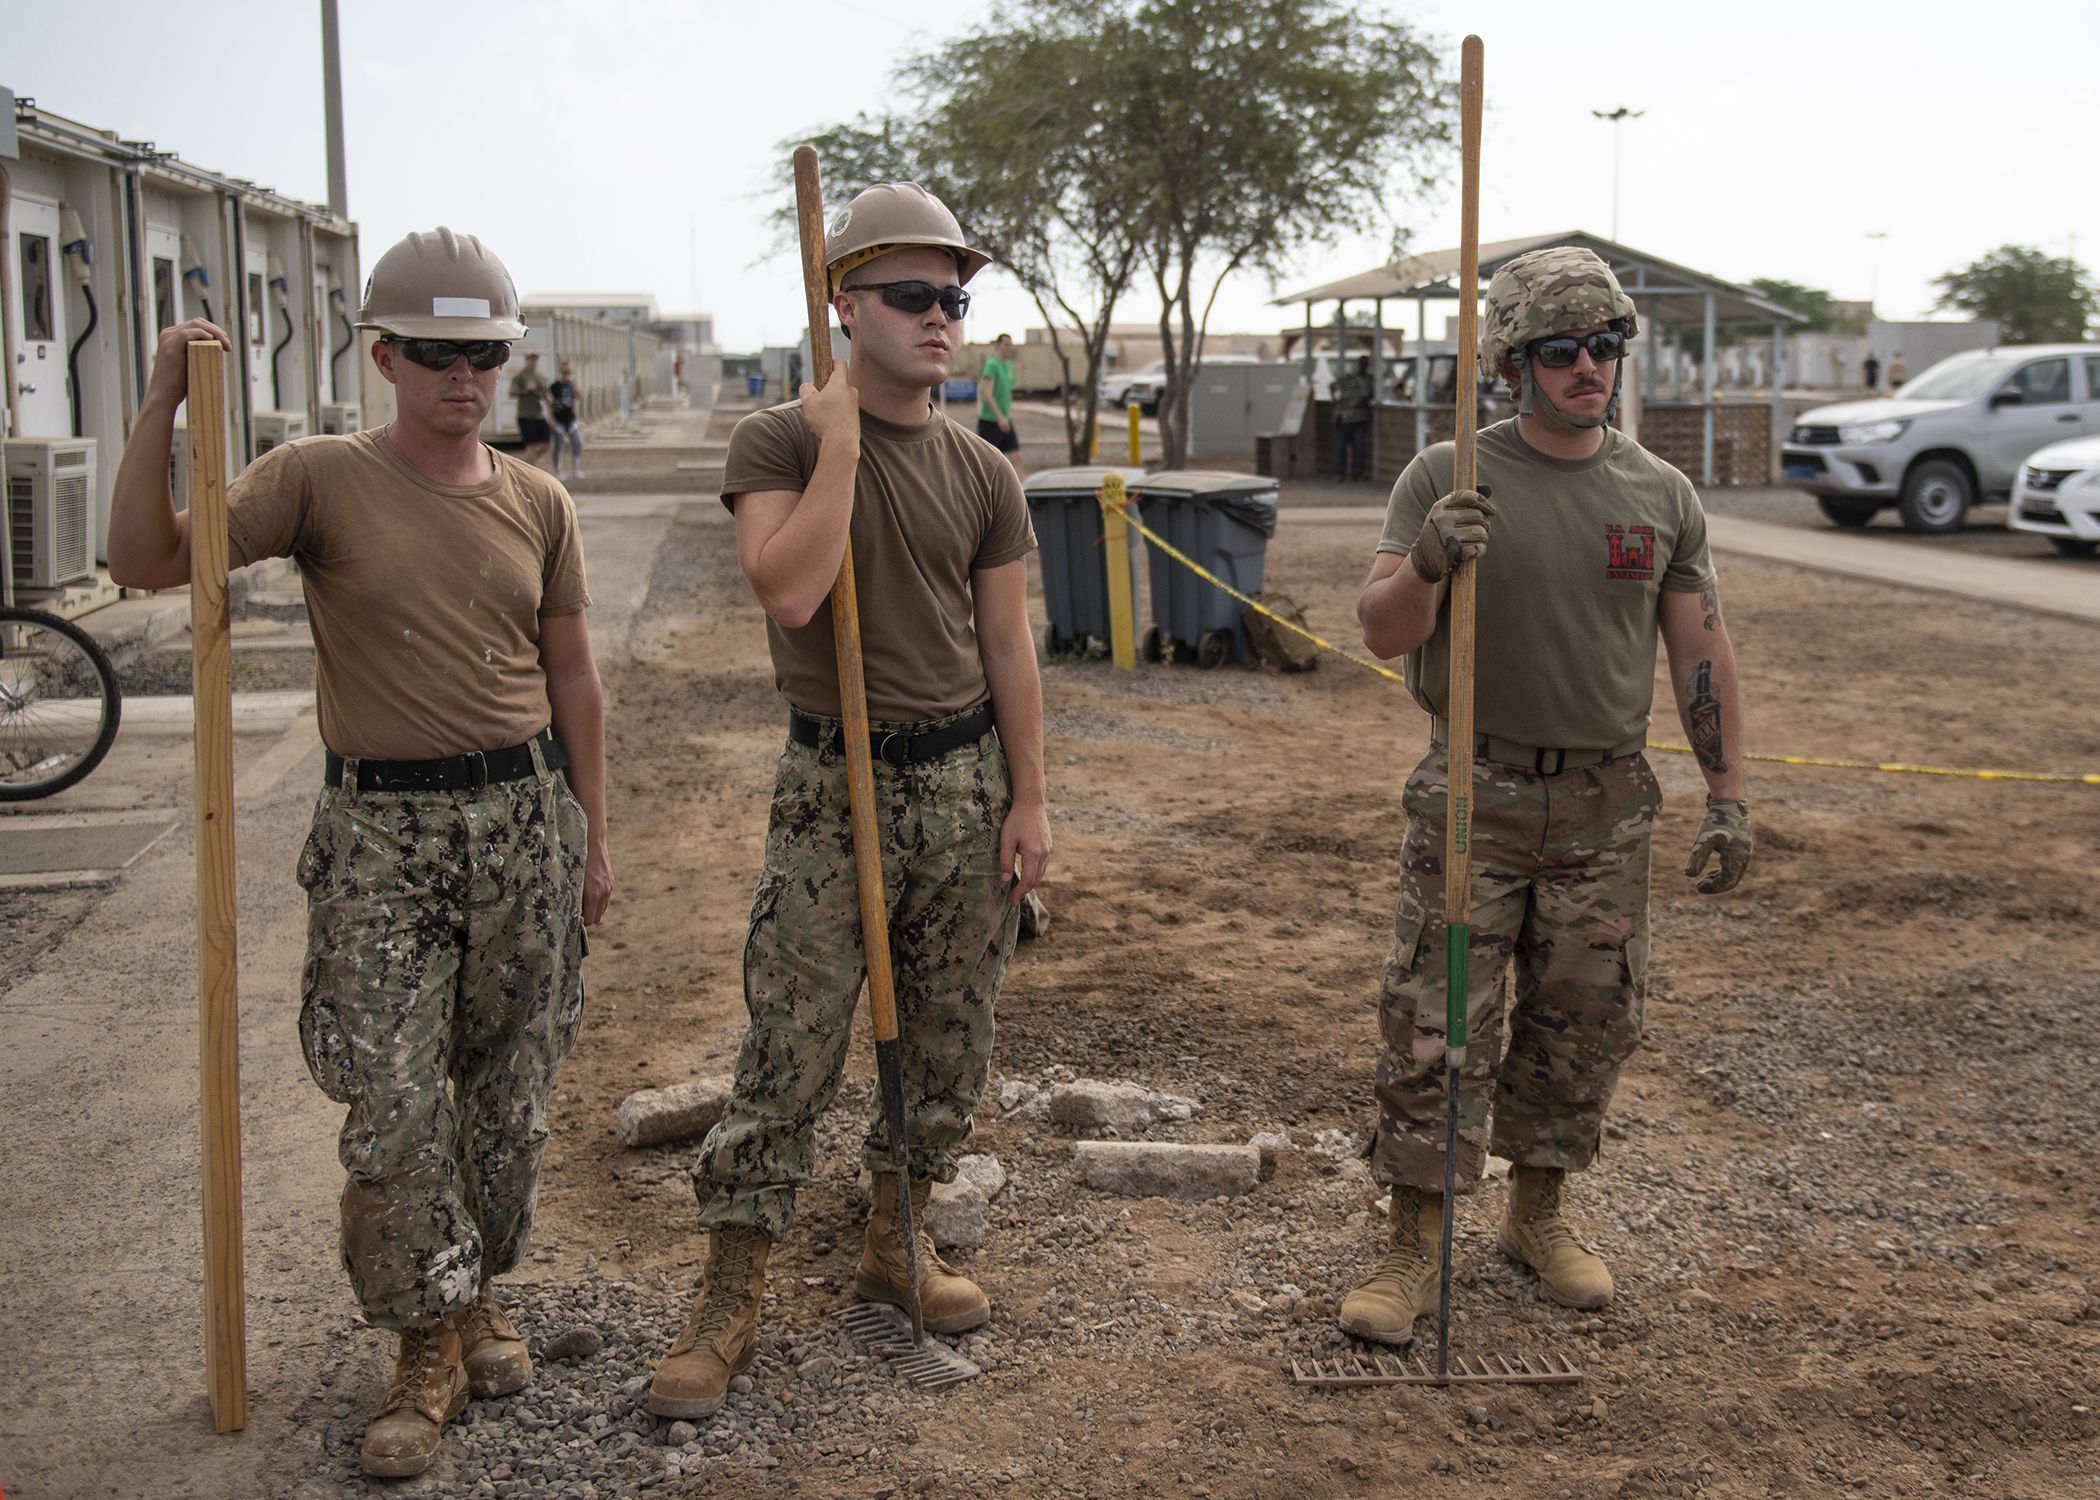 U.S. Navy Seaman Patrick Holt and Petty Officer 3rd Class Joshua McLaughlin, Seabees from Naval Mobile Construction Battalion 1, assigned to Combined Joint Task Force - Horn of Africa (CJTF-HOA), wait for a concrete delivery with U.S. Army Spc. Emmanuel Rodriguez, a carpenter from Second Platoon, 465th Engineer Company, 926th Engineer Battalion, 926th Engineer Brigade, 412th Theater Engineer Command, based in Birmingham, Alabama, assigned to CJTF-HOA, during a construction project Feb. 5, 2019. The two units were working in conjunction as a transition to the 465th EVCC taking over for the Seabees. (U.S. Air Force photo by Tech. Sgt. Shawn Nickel)